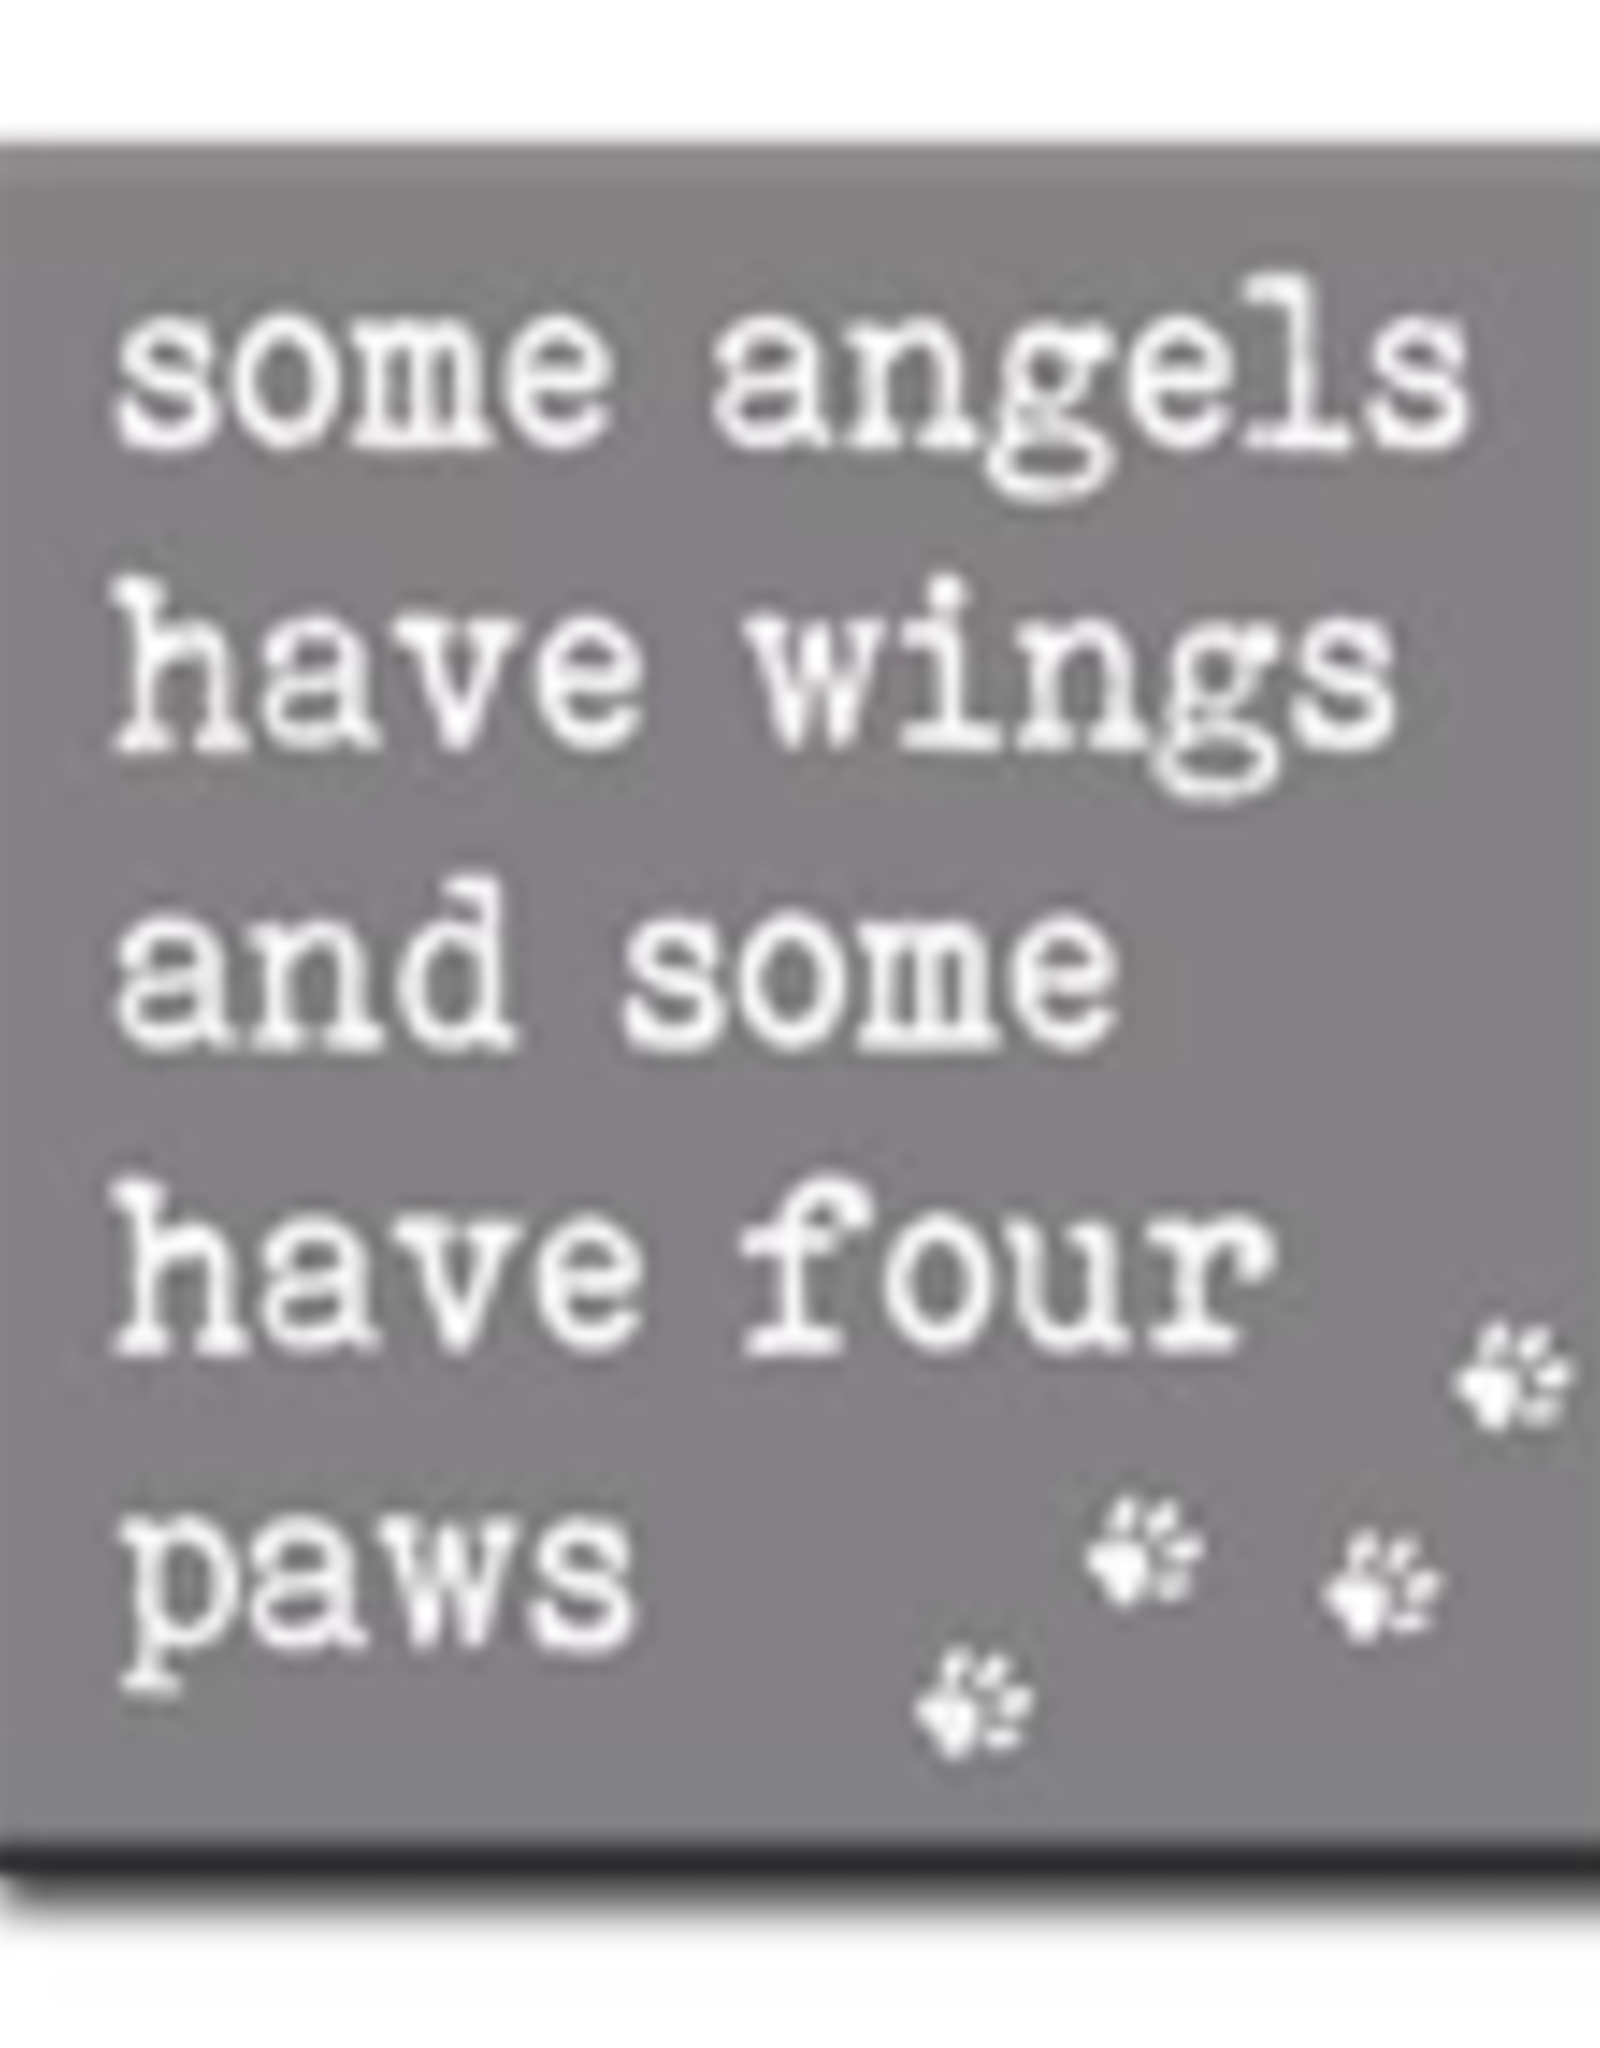 Some Angels Have Wings and Some Have Four Paws 4x4